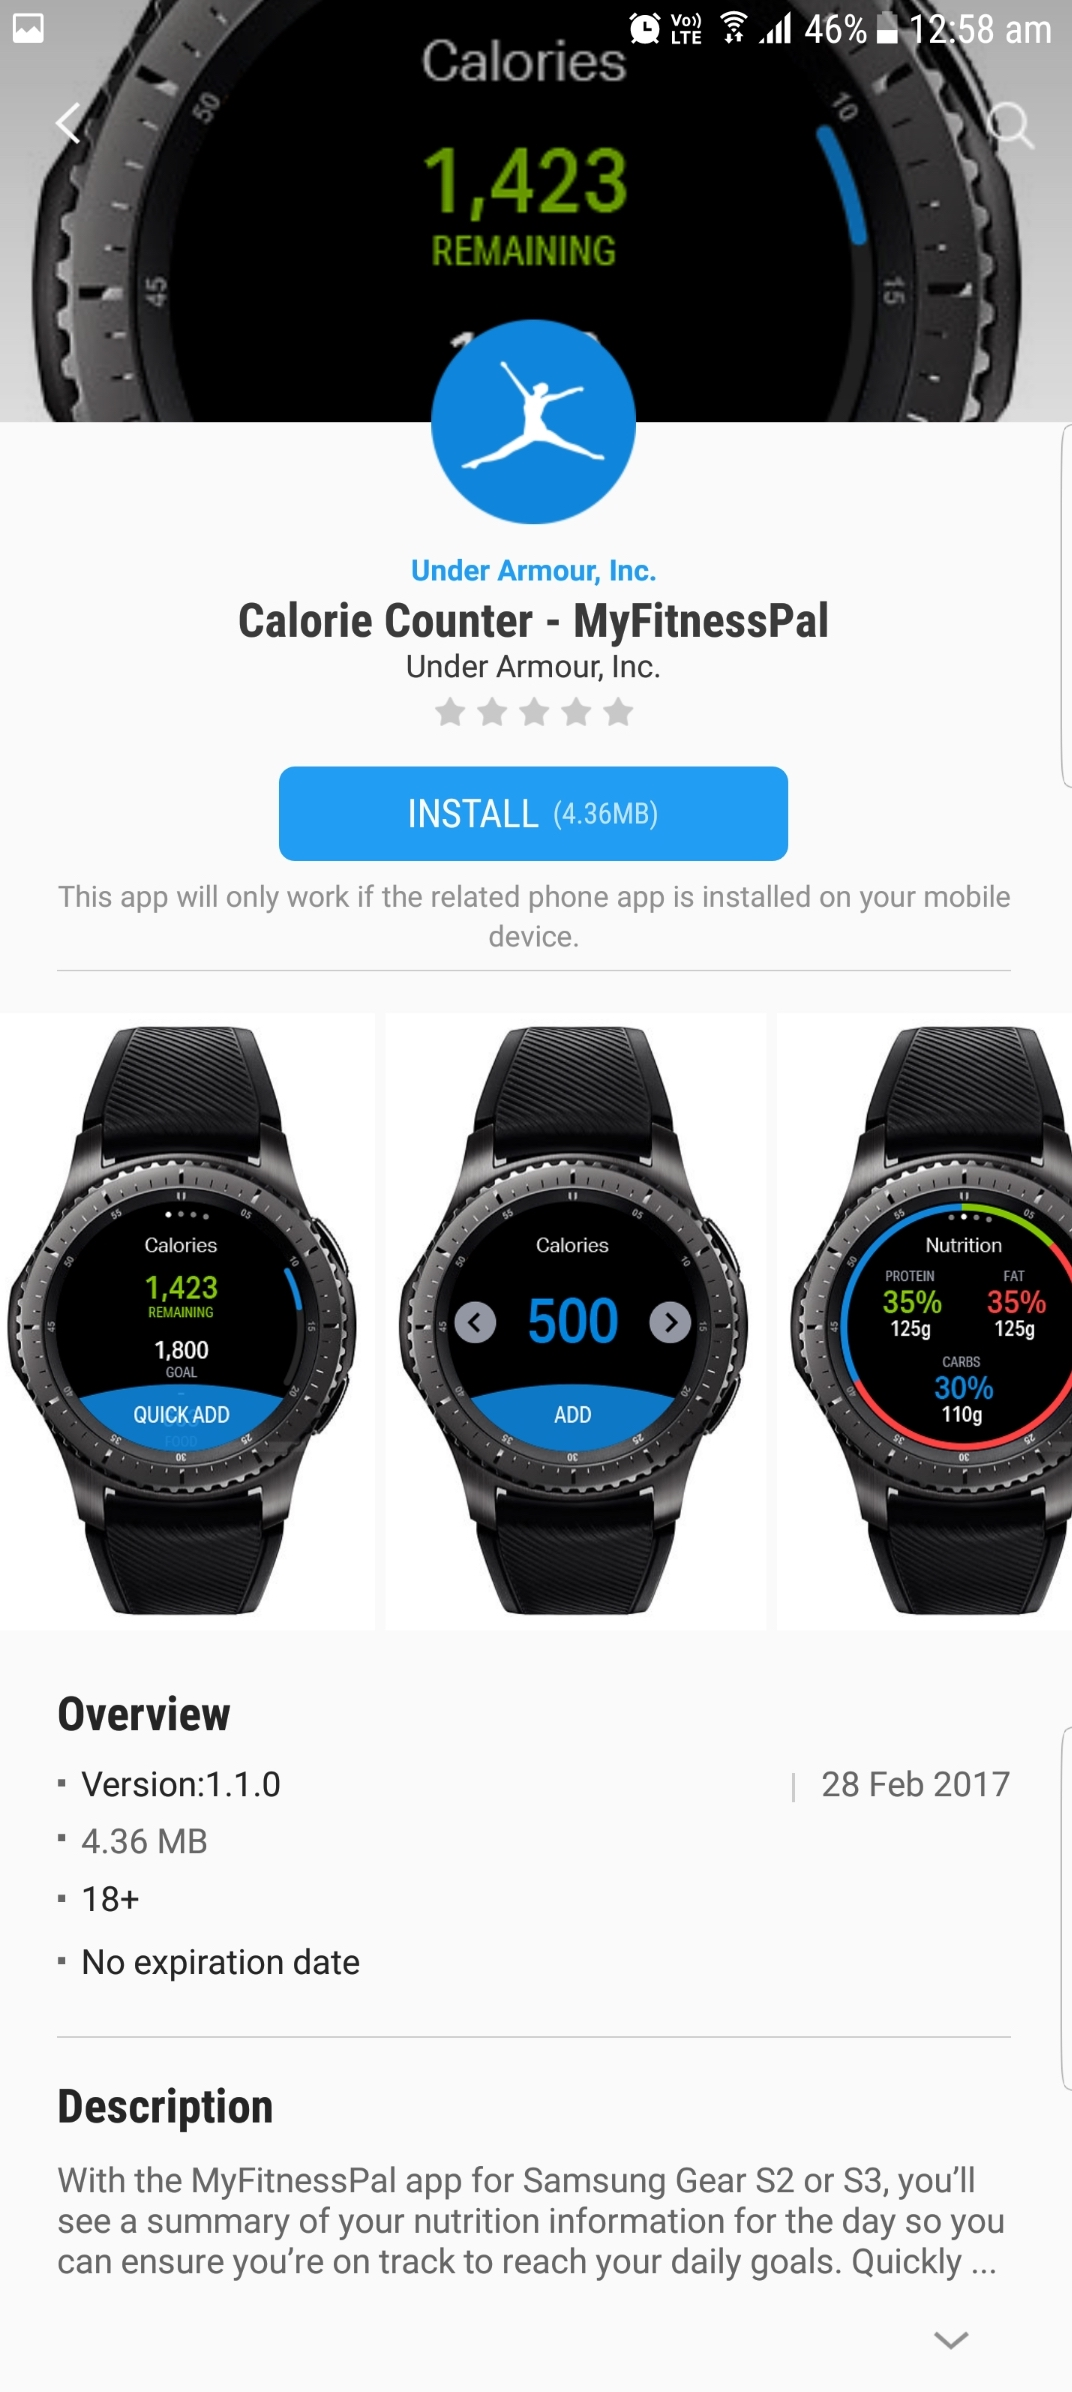 under armour map my run with Endomondo Map My Run And Myfitnesspal Apps Are Now Available For Gear S2 And S3 on Pcid1271991 likewise Letter From The Editor What Xxls Editor In Chief Has Learned moreover Pid1259667 073 as well Pid1285666 additionally Fallout 4 Survival Wasteland.